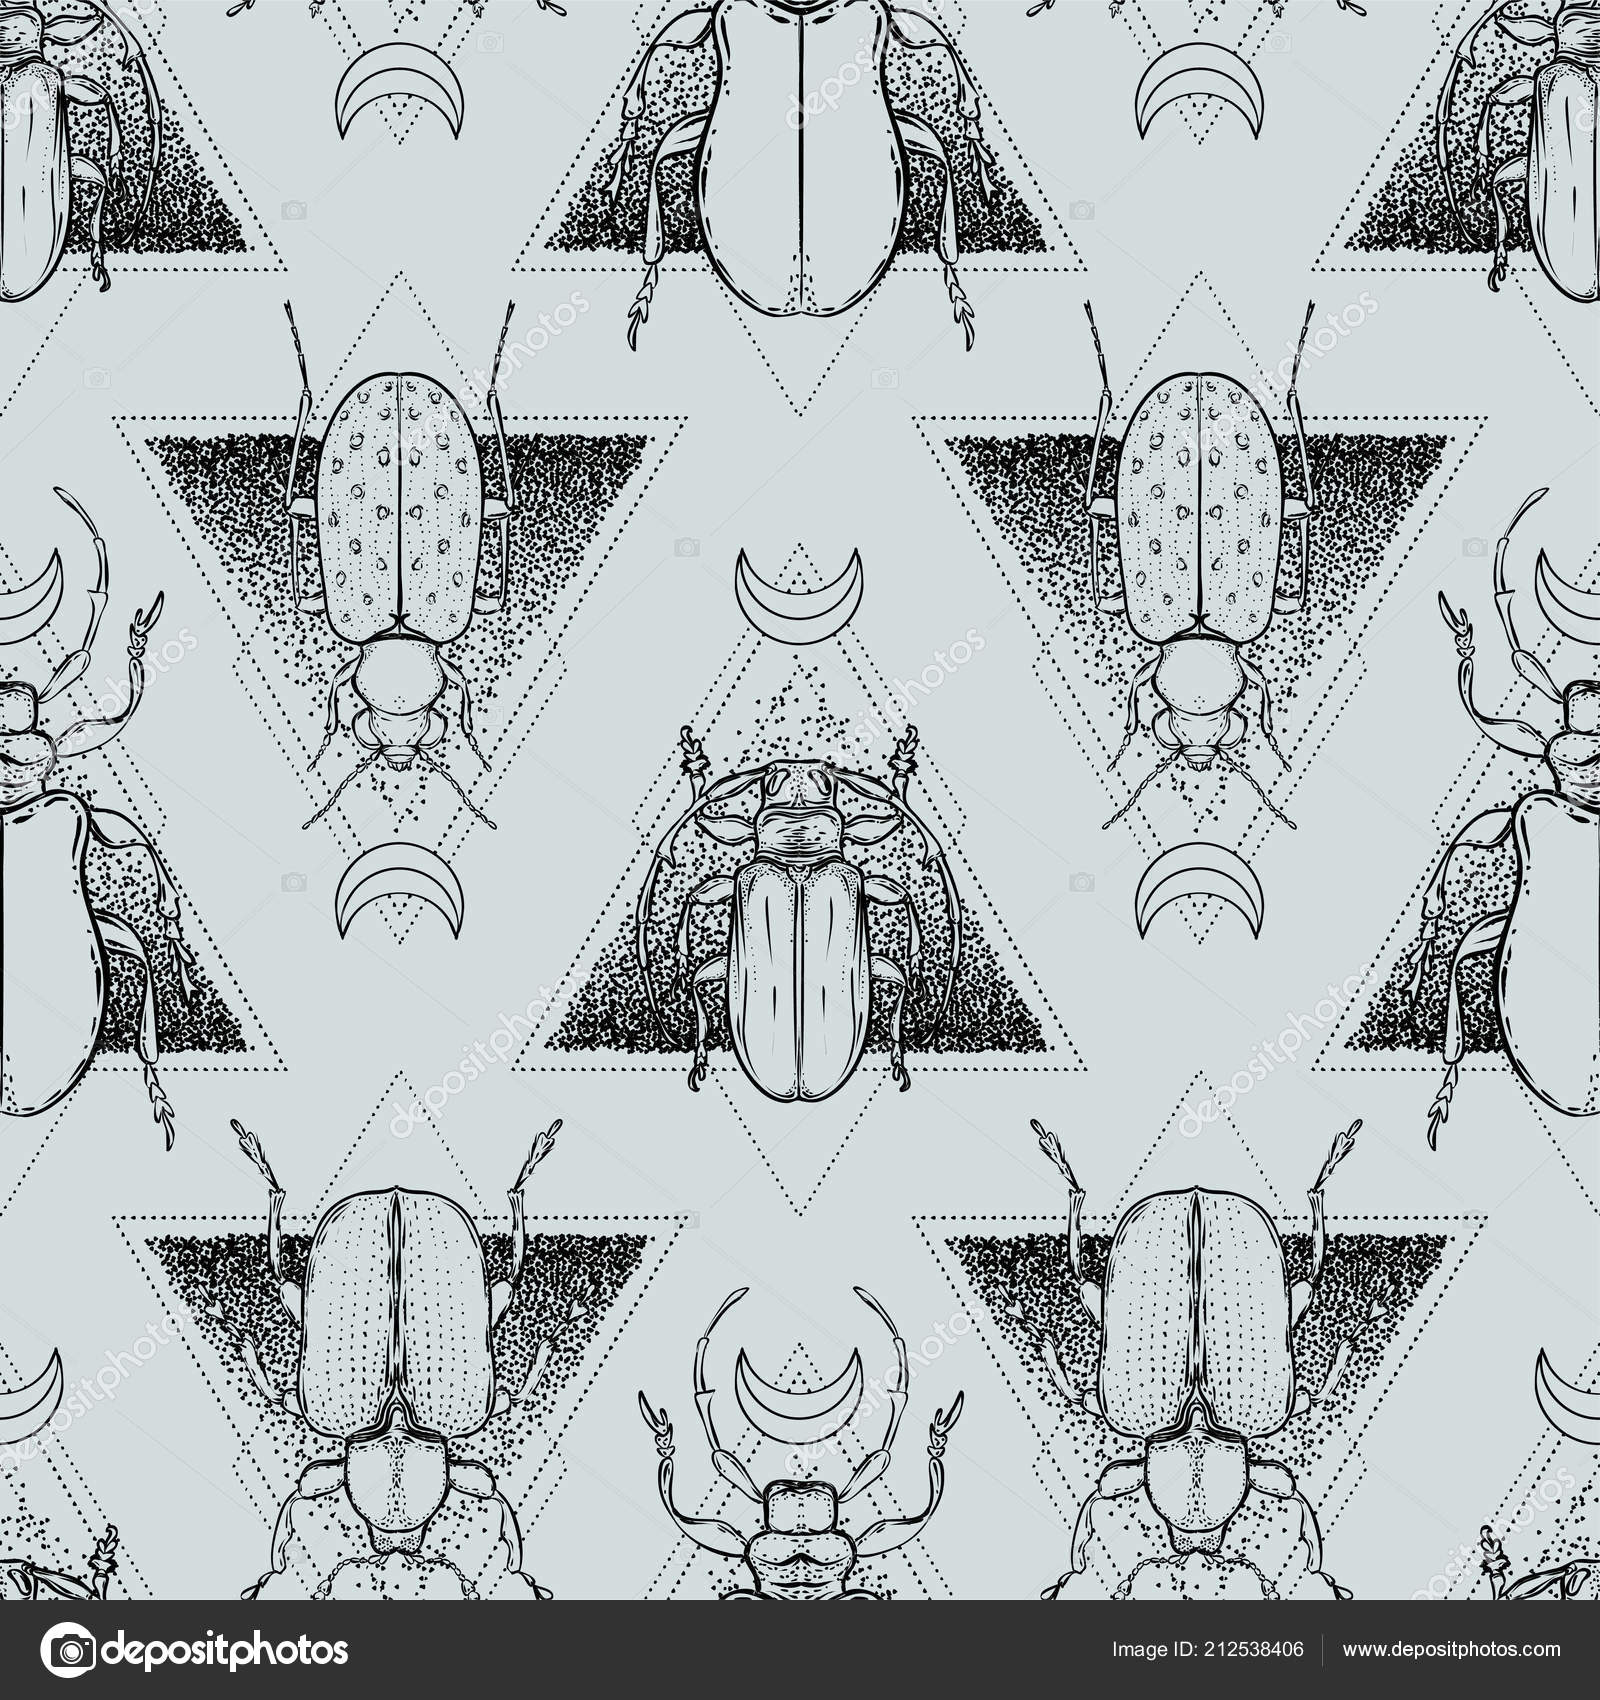 f7e25d7ff Seamless pattern. Mystical symbols and insects. Alchemy, religion,  occultism, spirituality. Hand-drawn vintage.– stock illustration